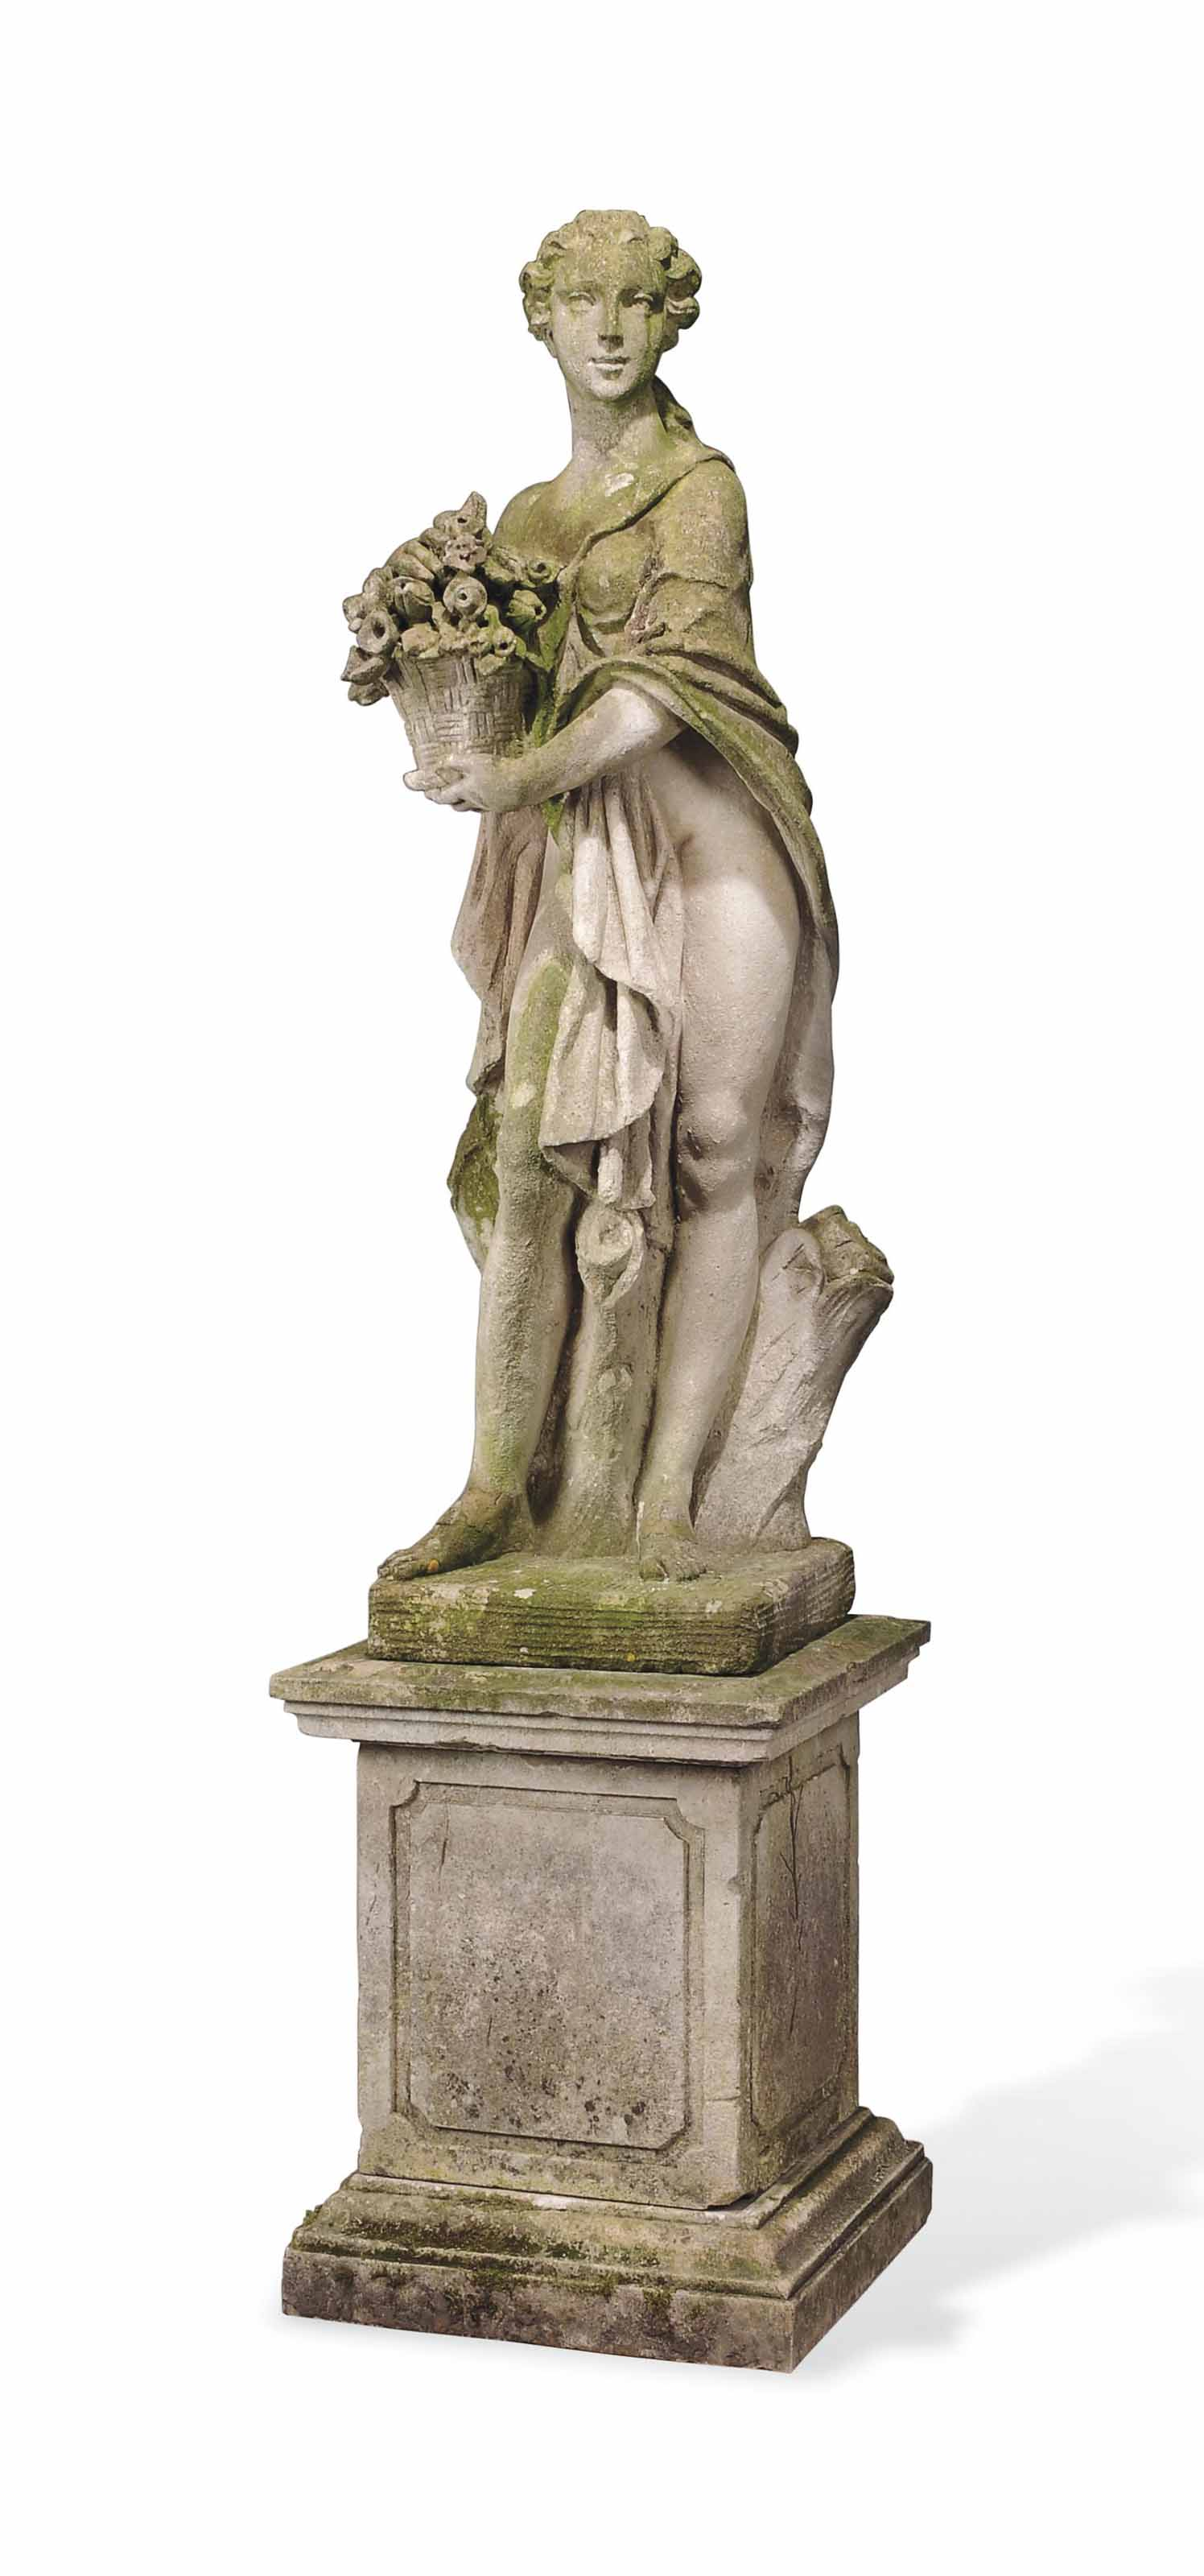 AN ENGLISH COMPOSITE STONE FIGURE OF FLORA